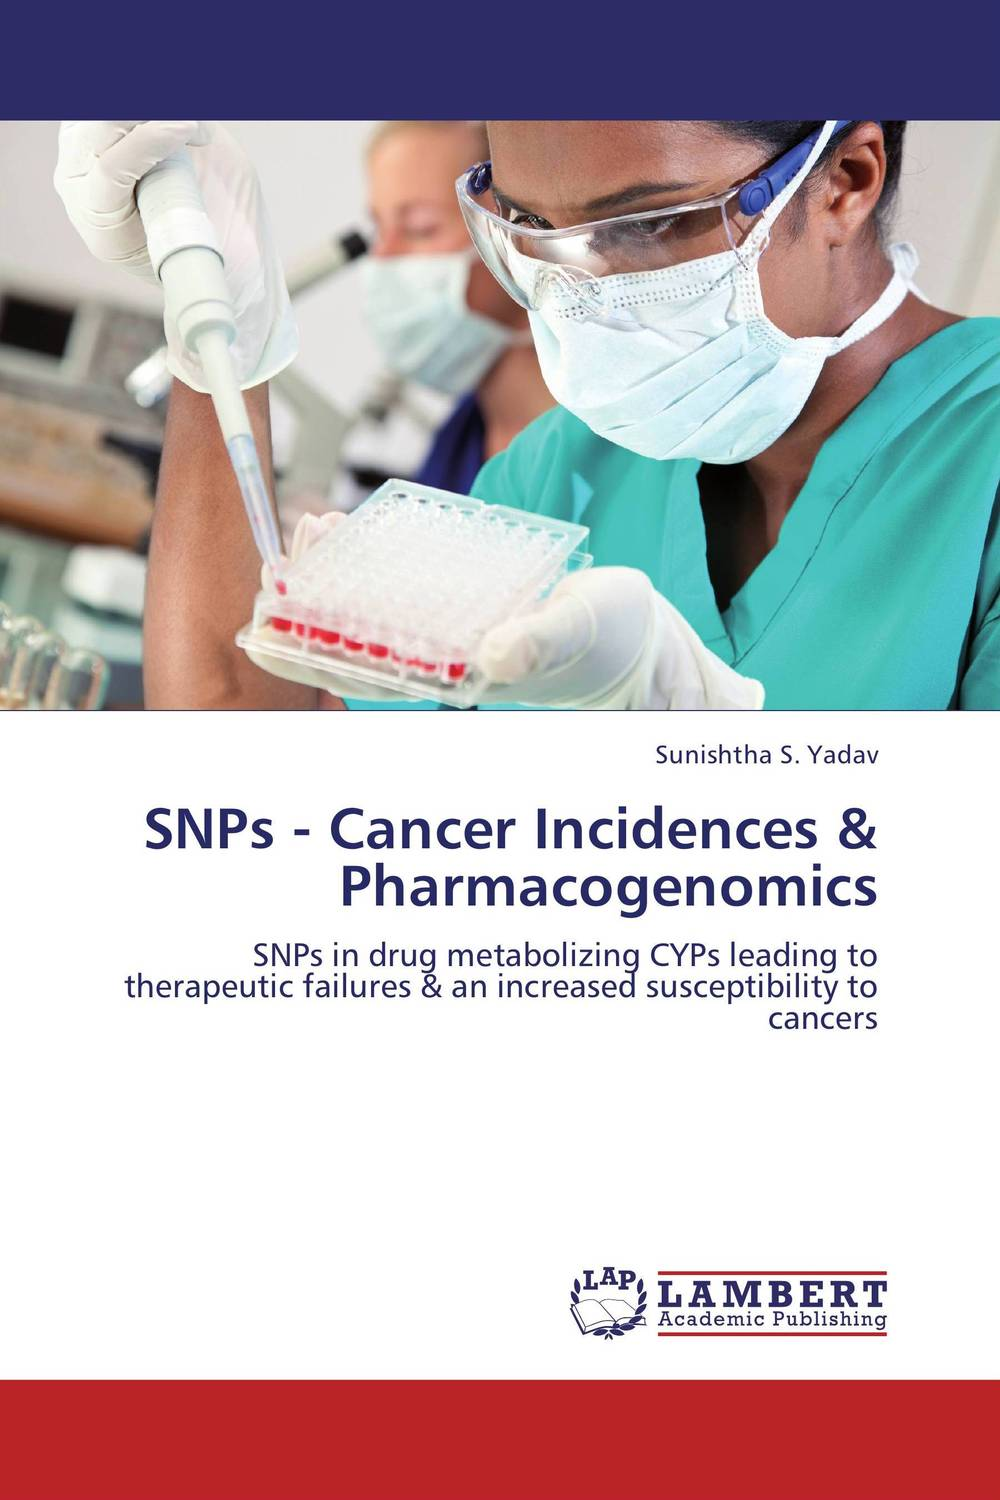 SNPs - Cancer Incidences & Pharmacogenomics do snps underlie drug abuse and cardiac disease comorbidity